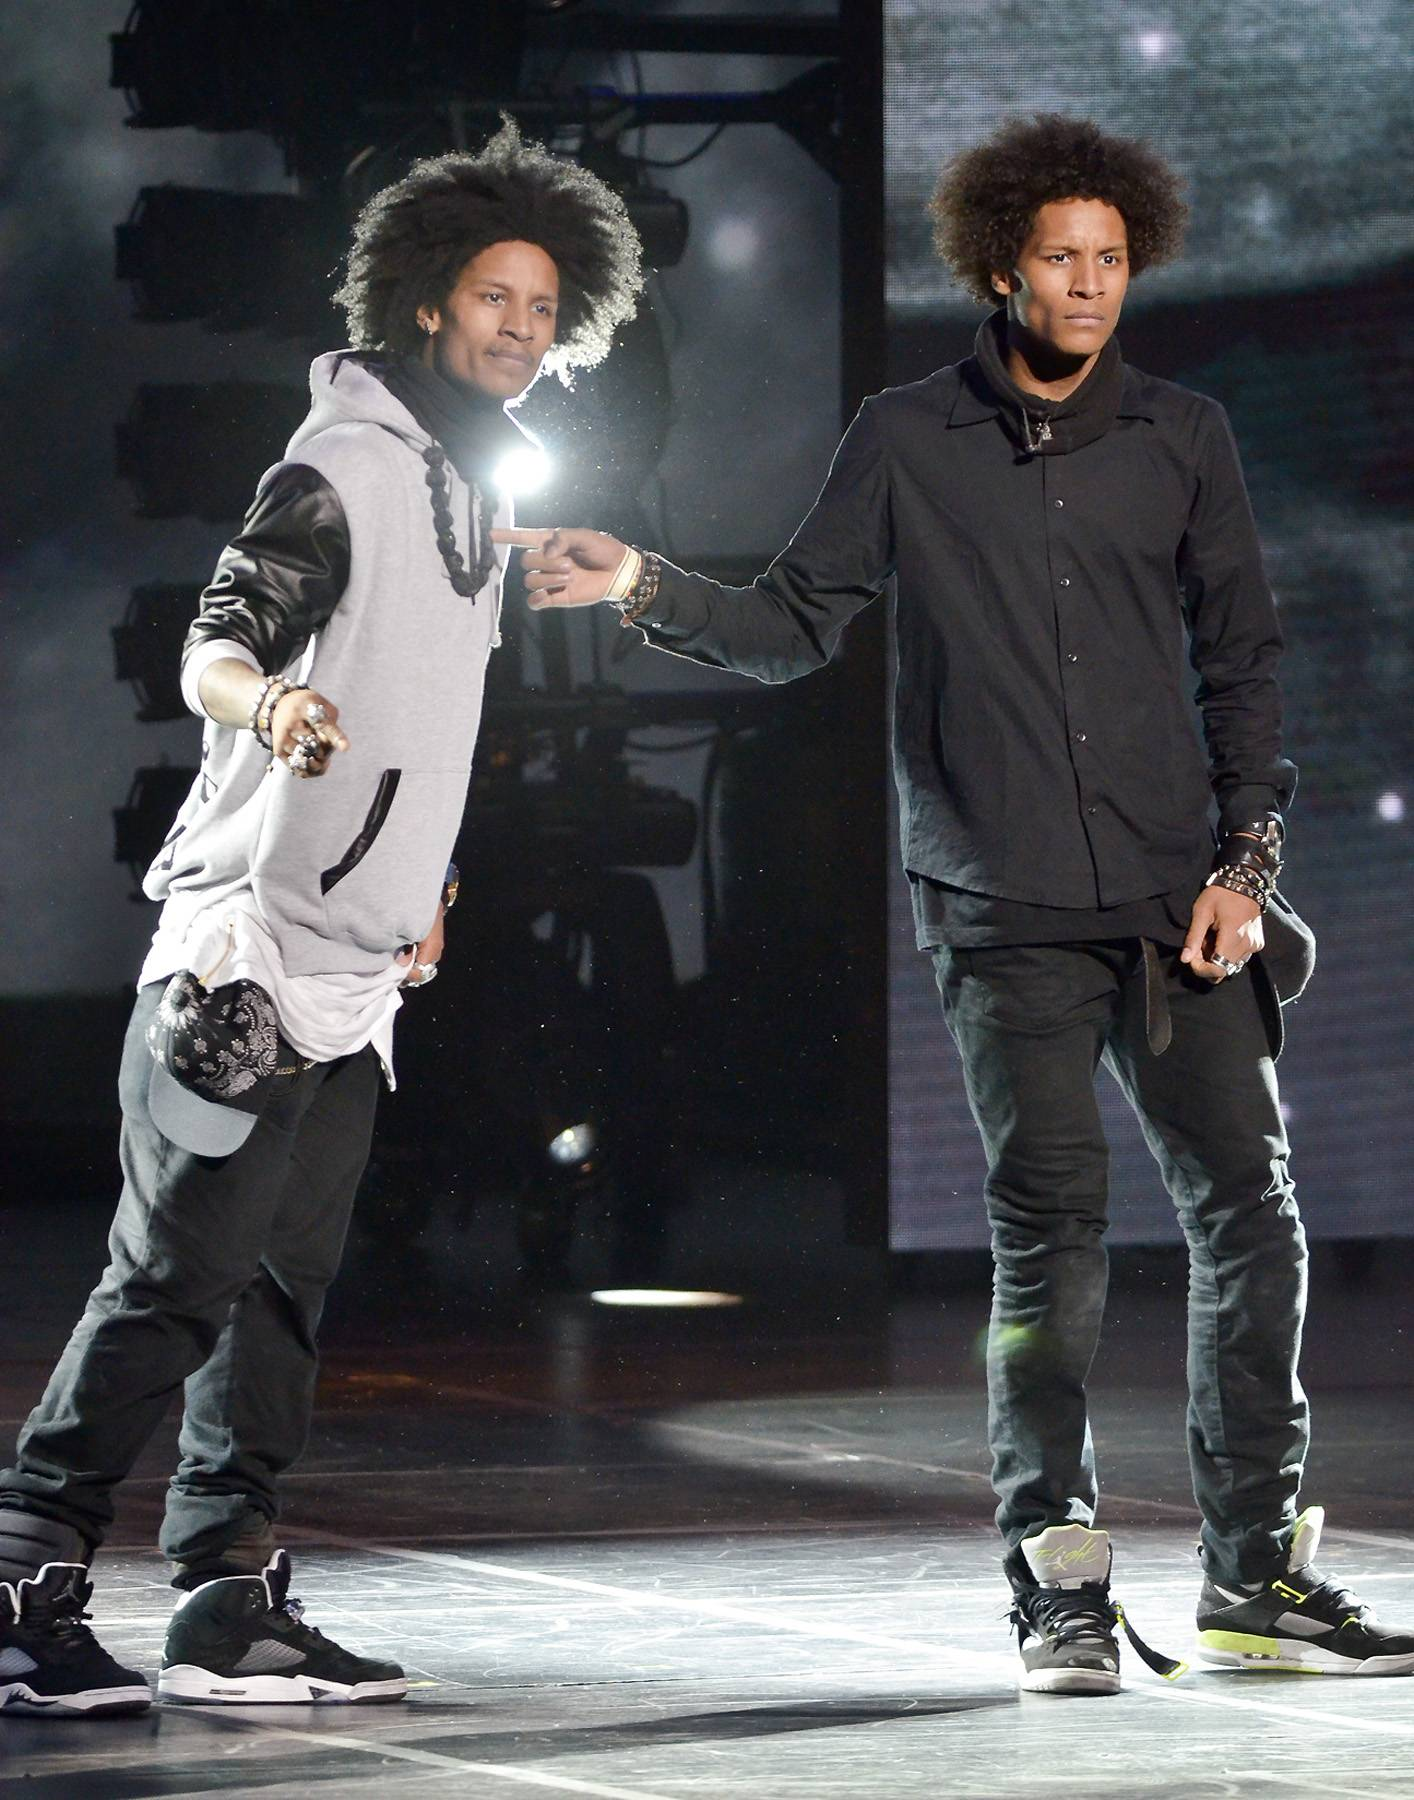 Les Twins Stop by 106 & Park Tonight - Les Twins stop by 106 & Park tonight for the final Urban Dance League battle. Tune in at 5P/4C.  (Photo: Kris Connor/Getty Images)